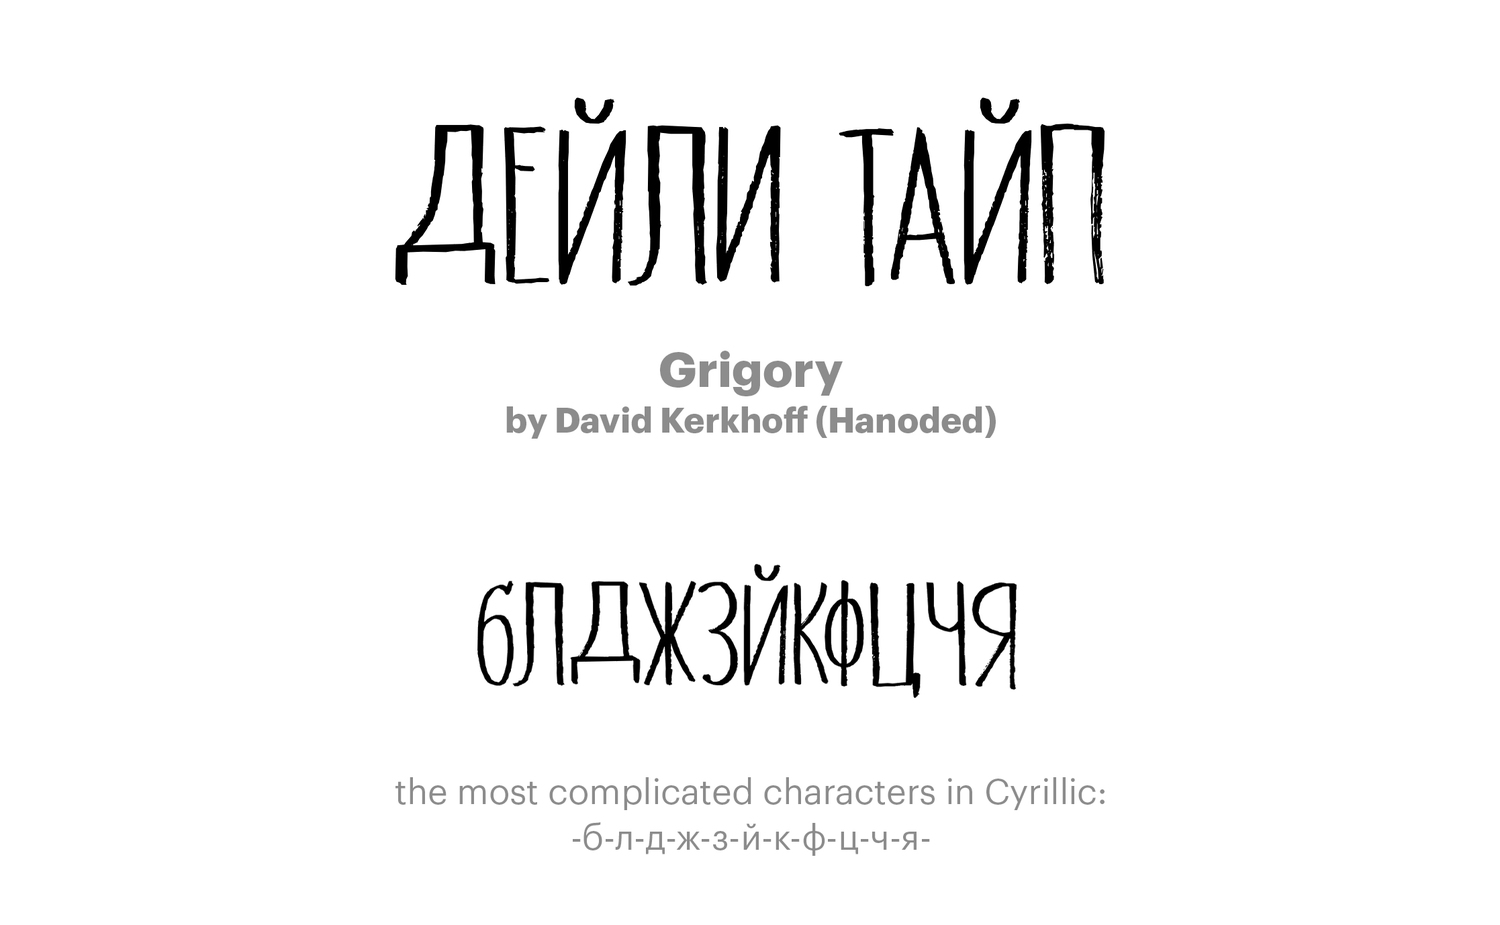 Grigory-by-David-Kerkhoff-(Hanoded)